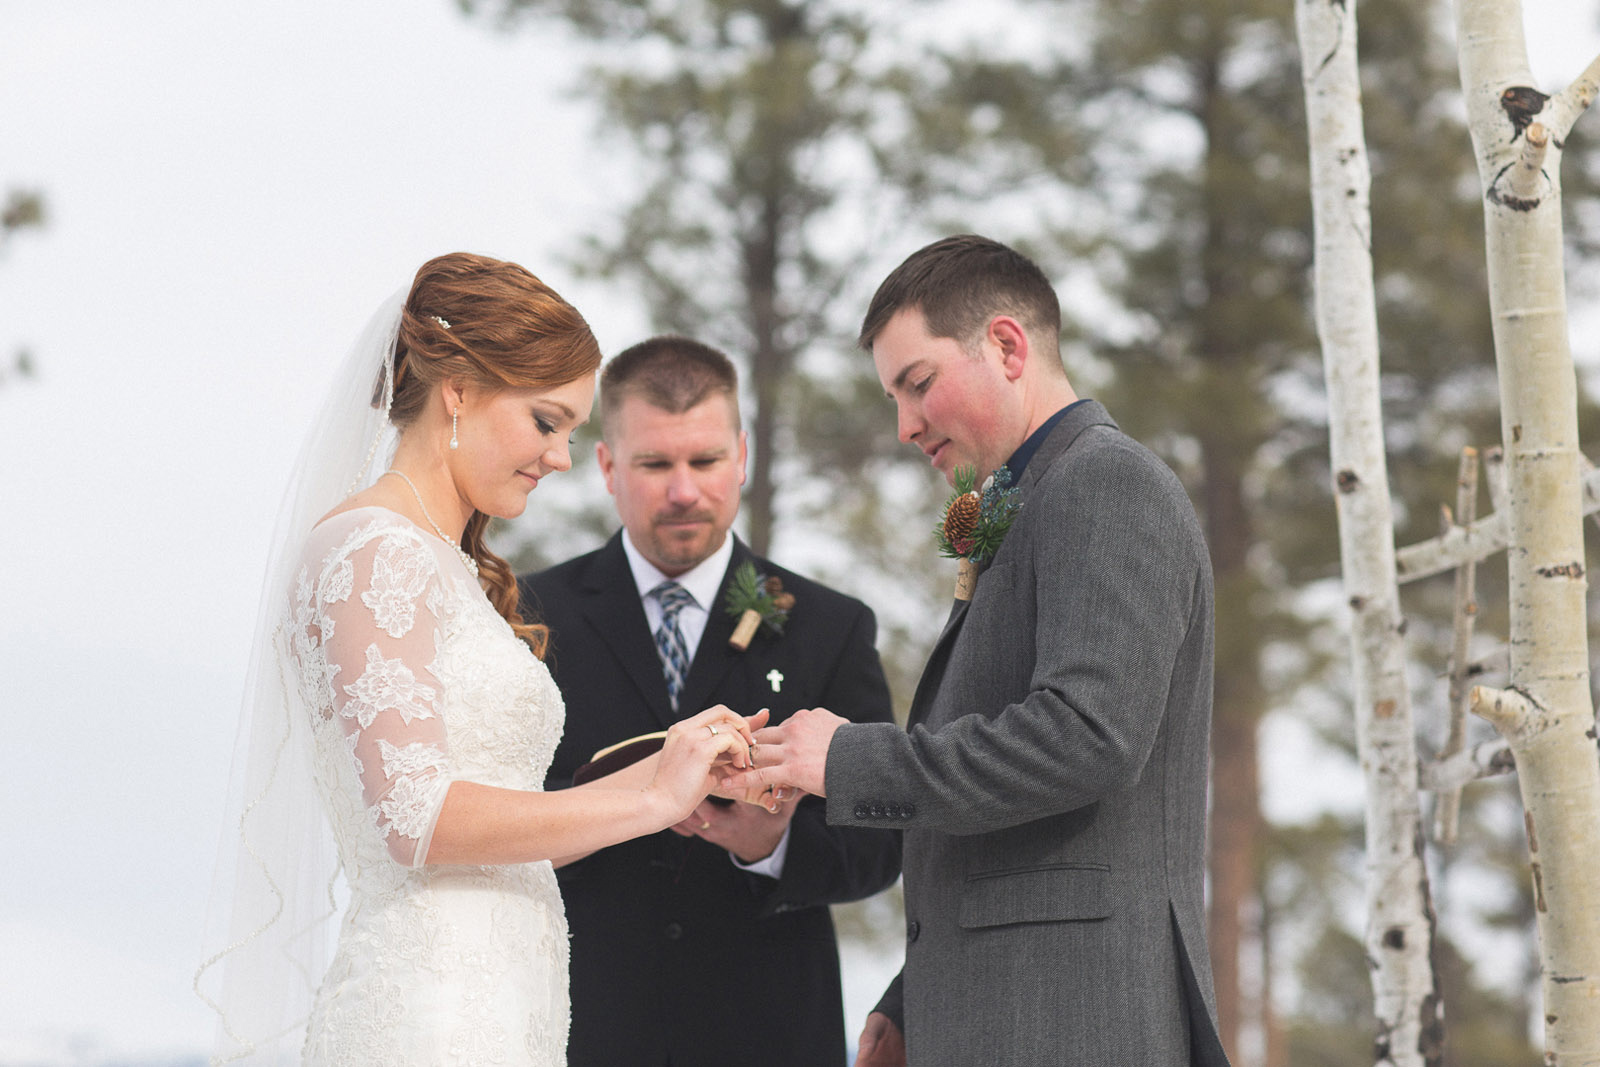 120-wedding-ceremony-in-pagosa-springs-wedding-photographer-snow-winter-wedding